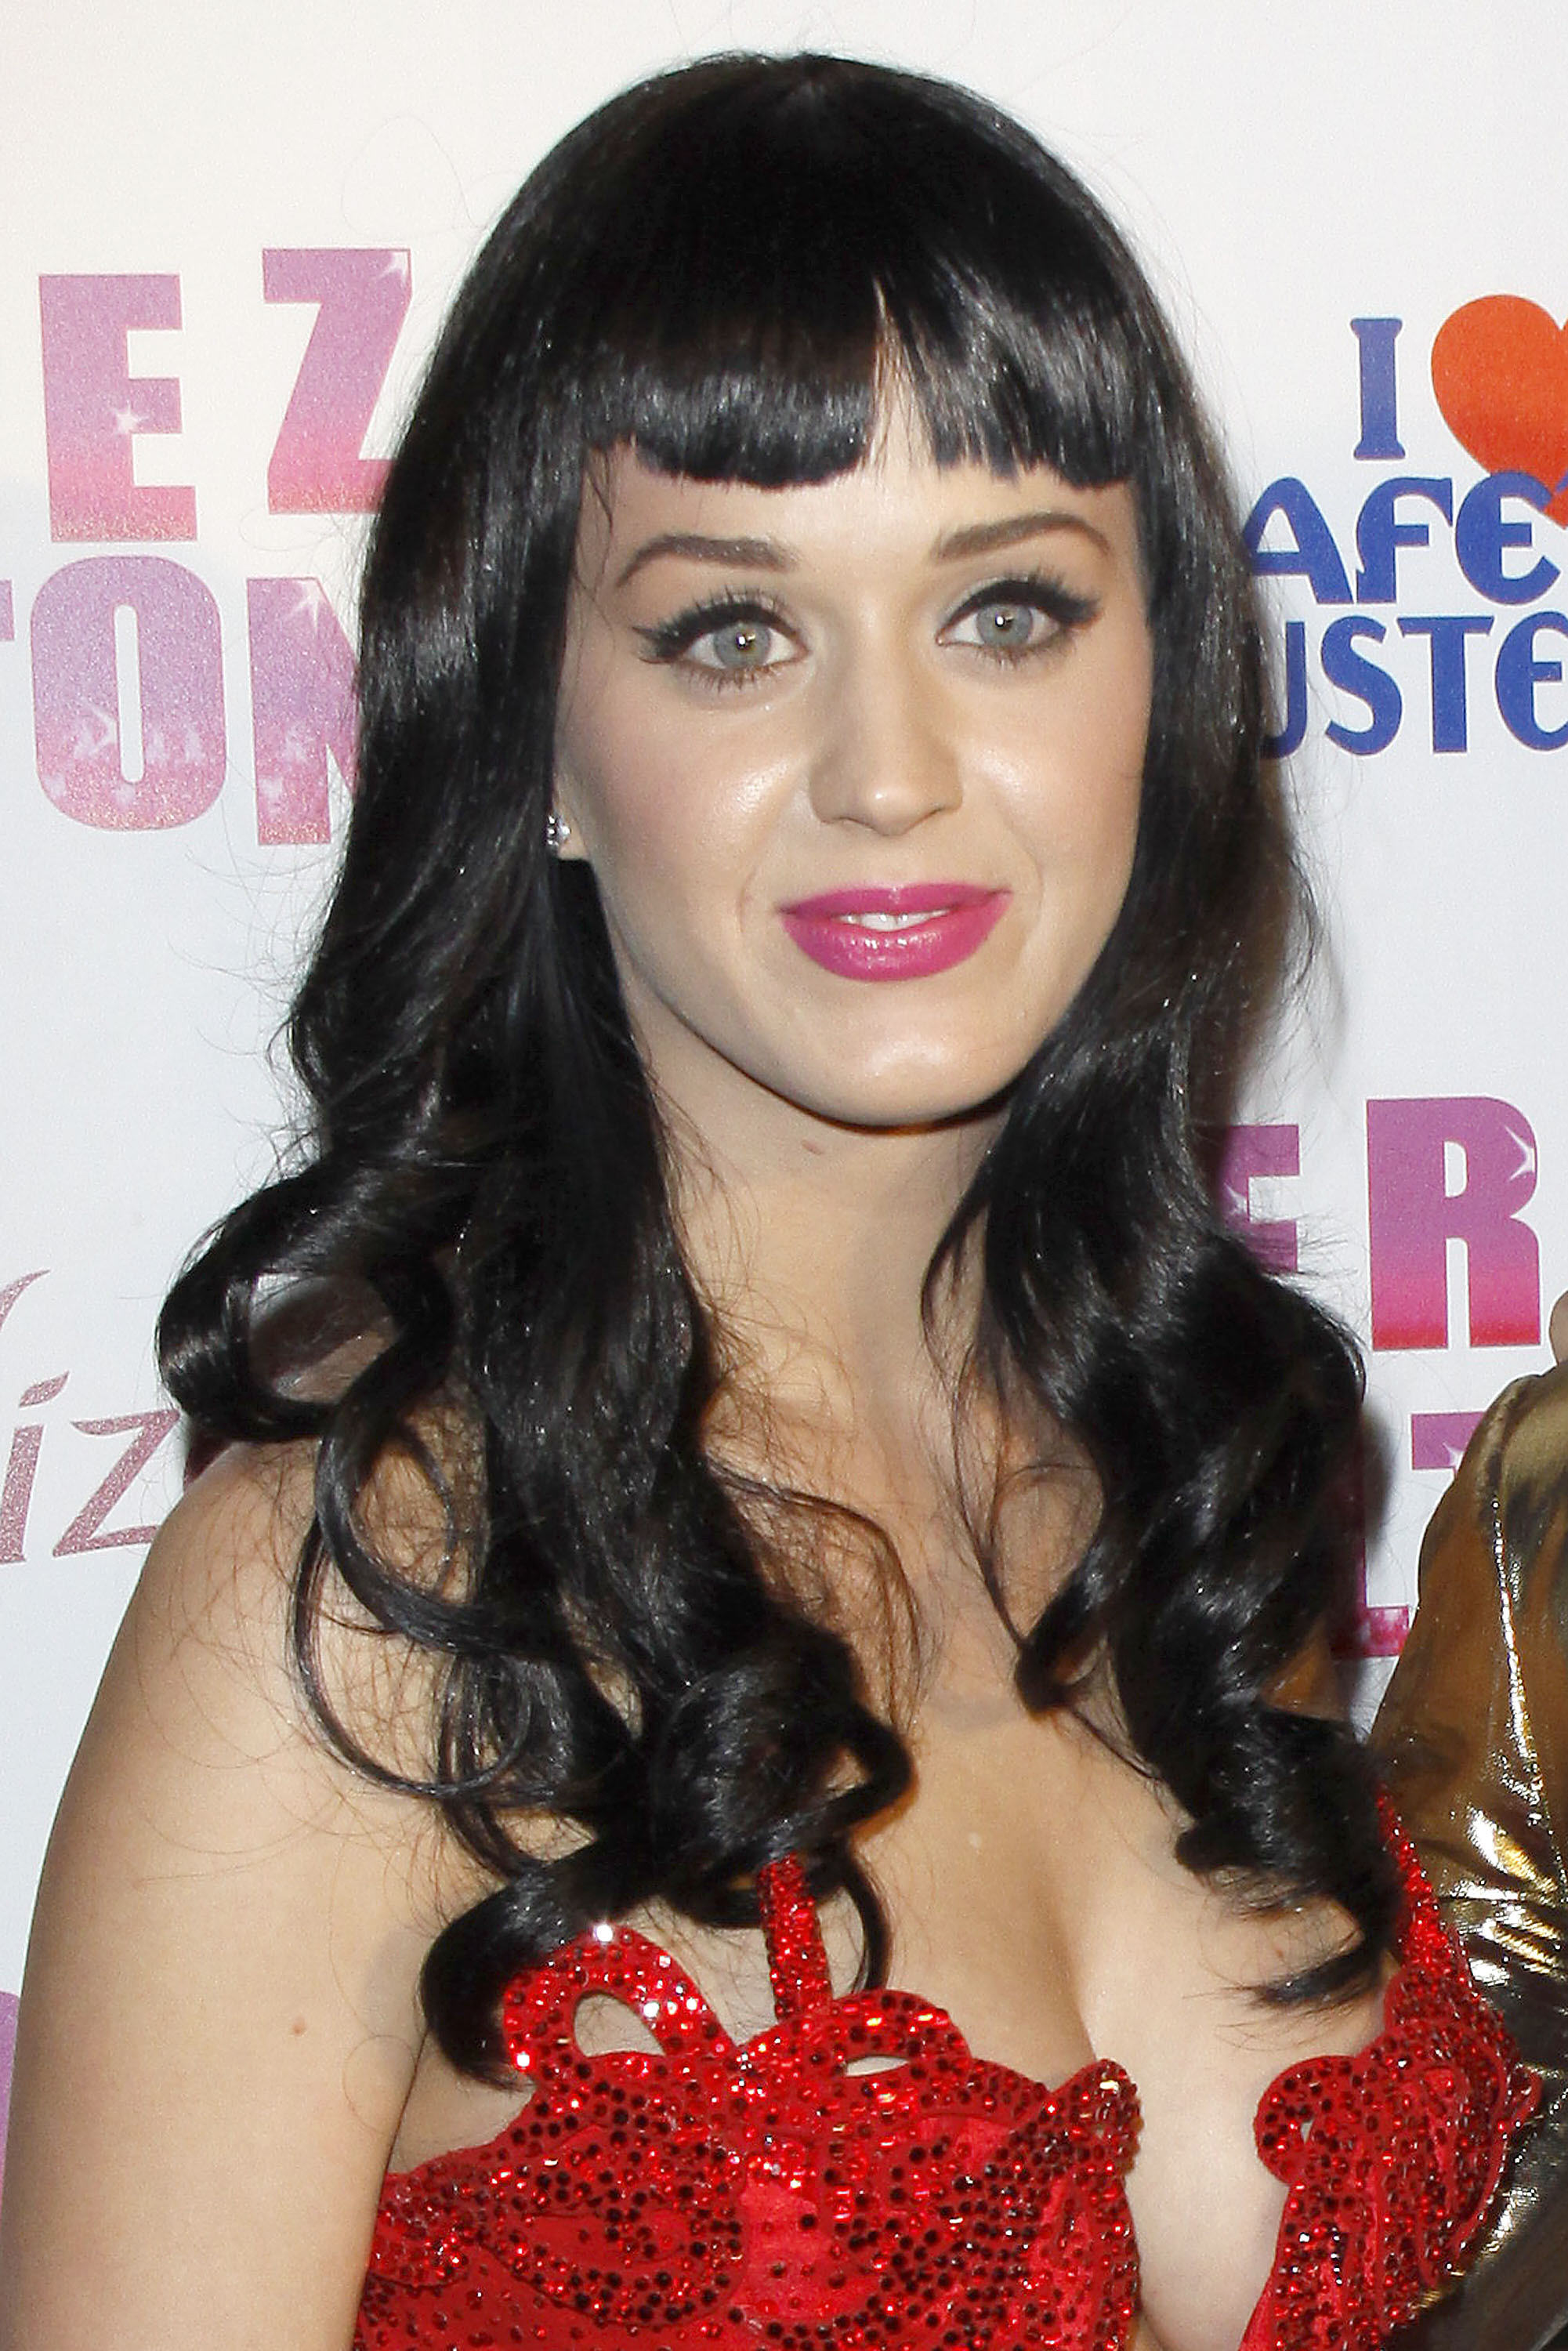 11030_katy_perry_perez_hiltons_birthday_party.com_TheElder_KatyPerry38_122_220lo.jpg